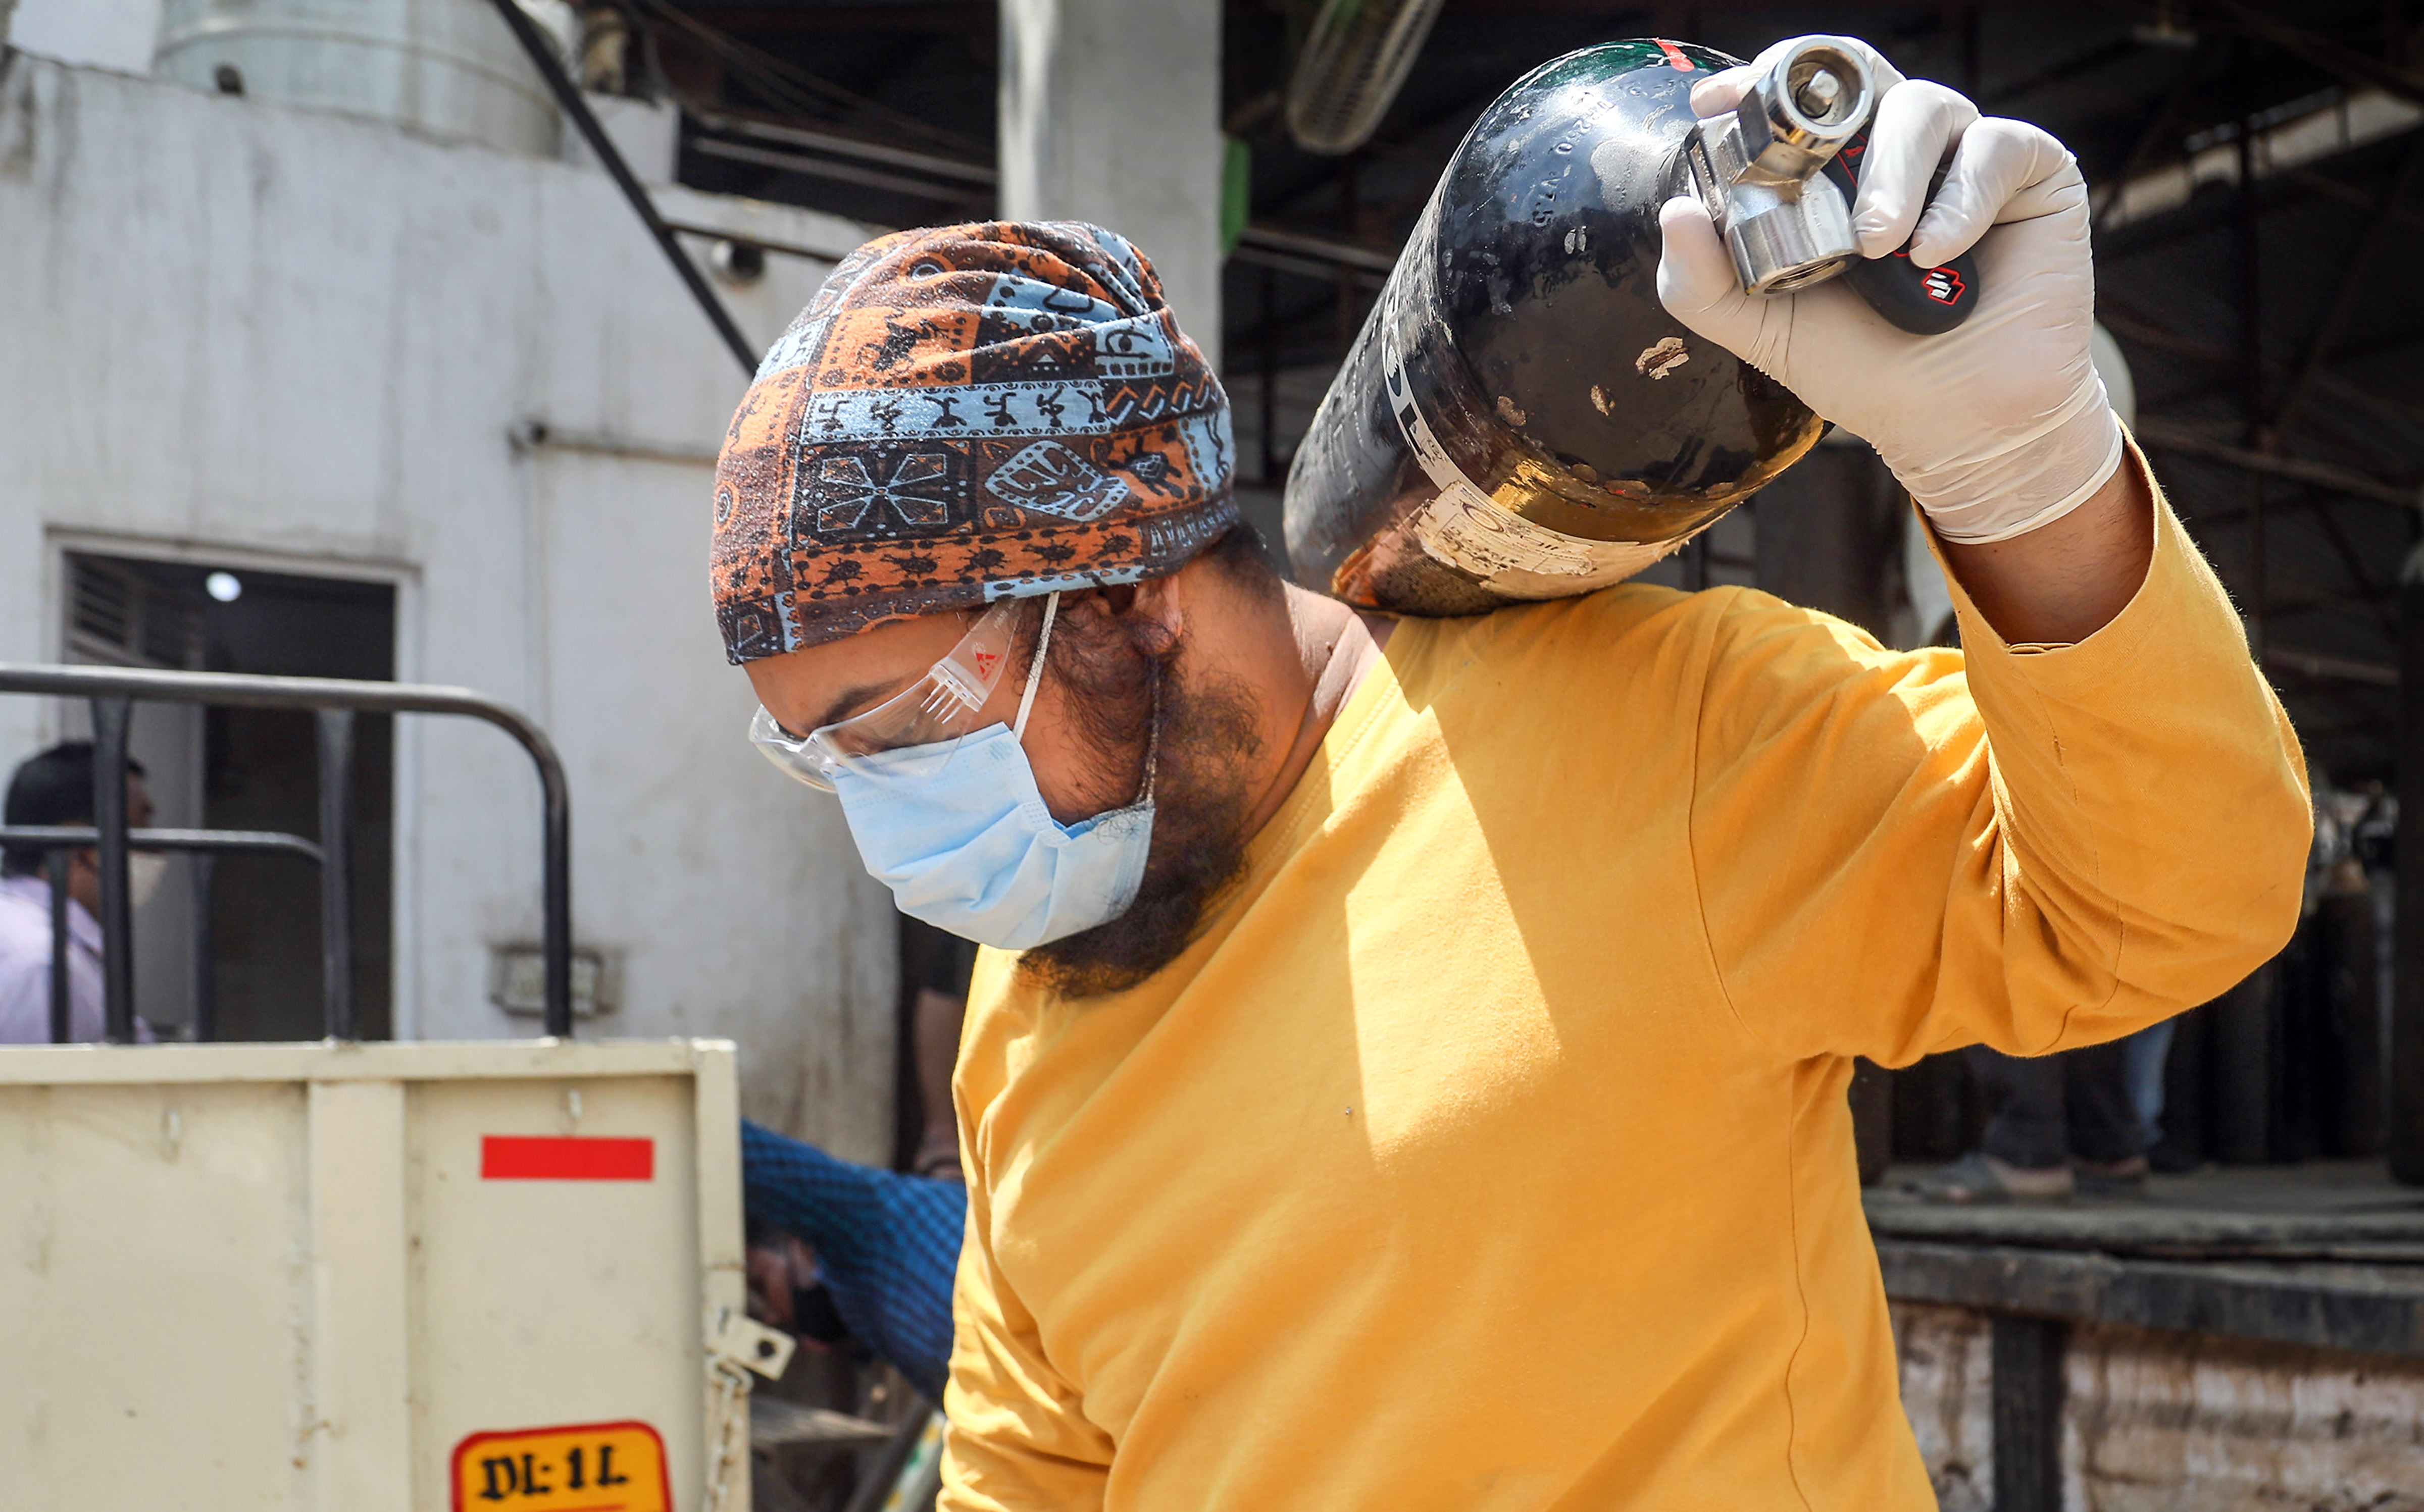 New Delhi: A relative of a COVID-19  patient carries empty oxygen cylinders for refilling, as coronavirus cases surge across the country, in New Delhi, Wednesday, April 21, 2021. (PTI Photo)(PTI04_21_2021_000111B)